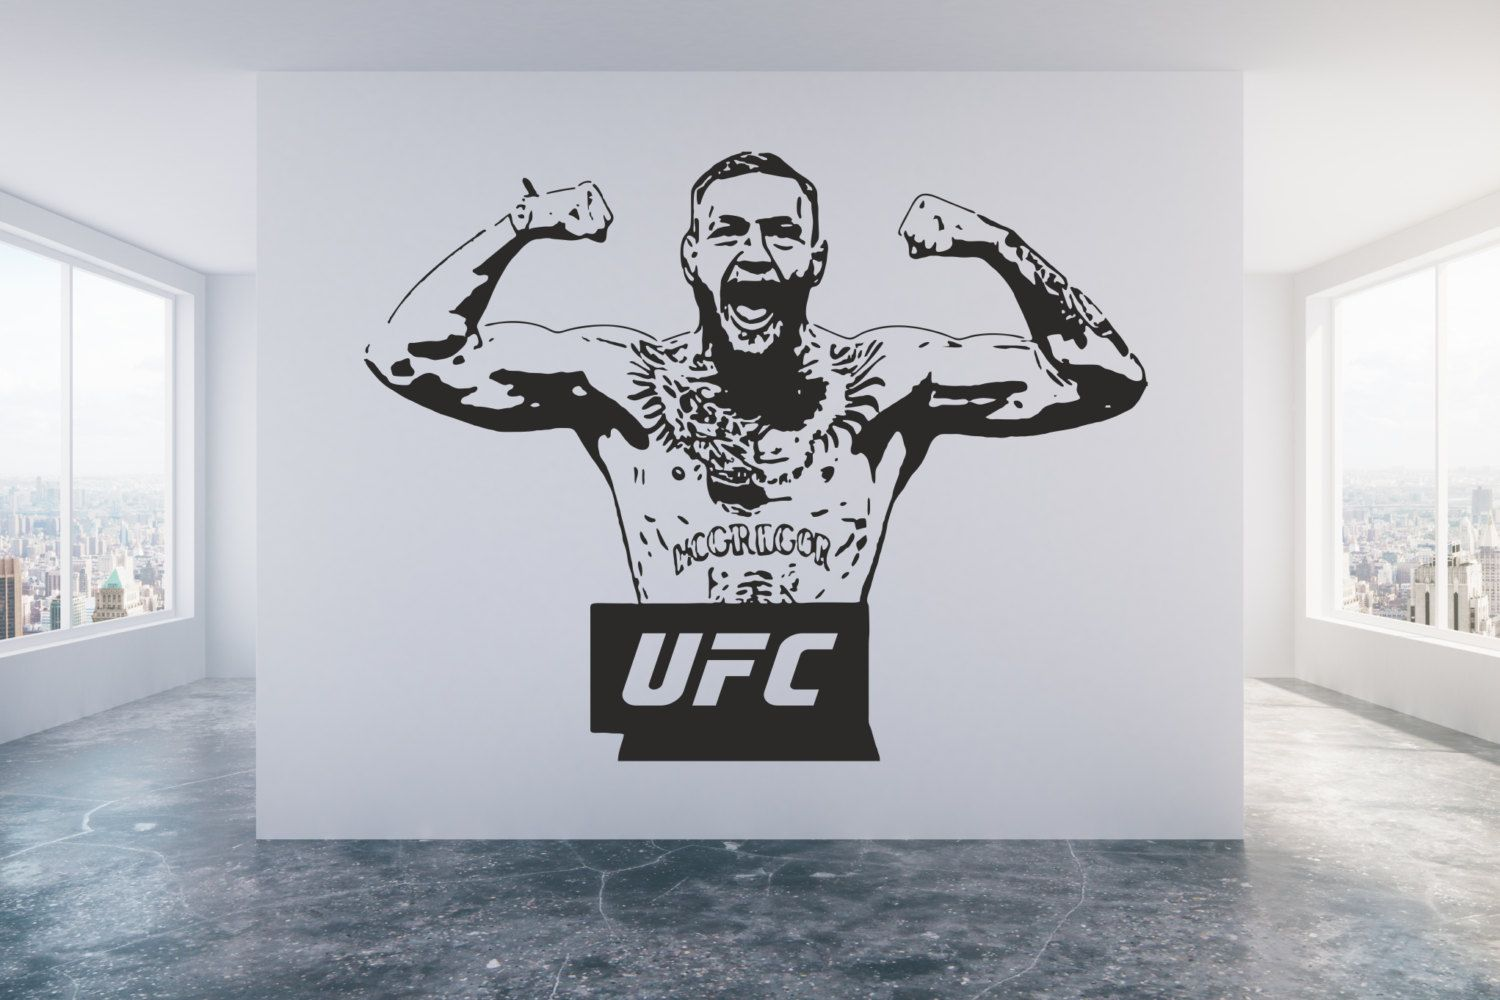 Conor Mcgregor Ufc Champion Cage Fighter Mixed Martial Arts